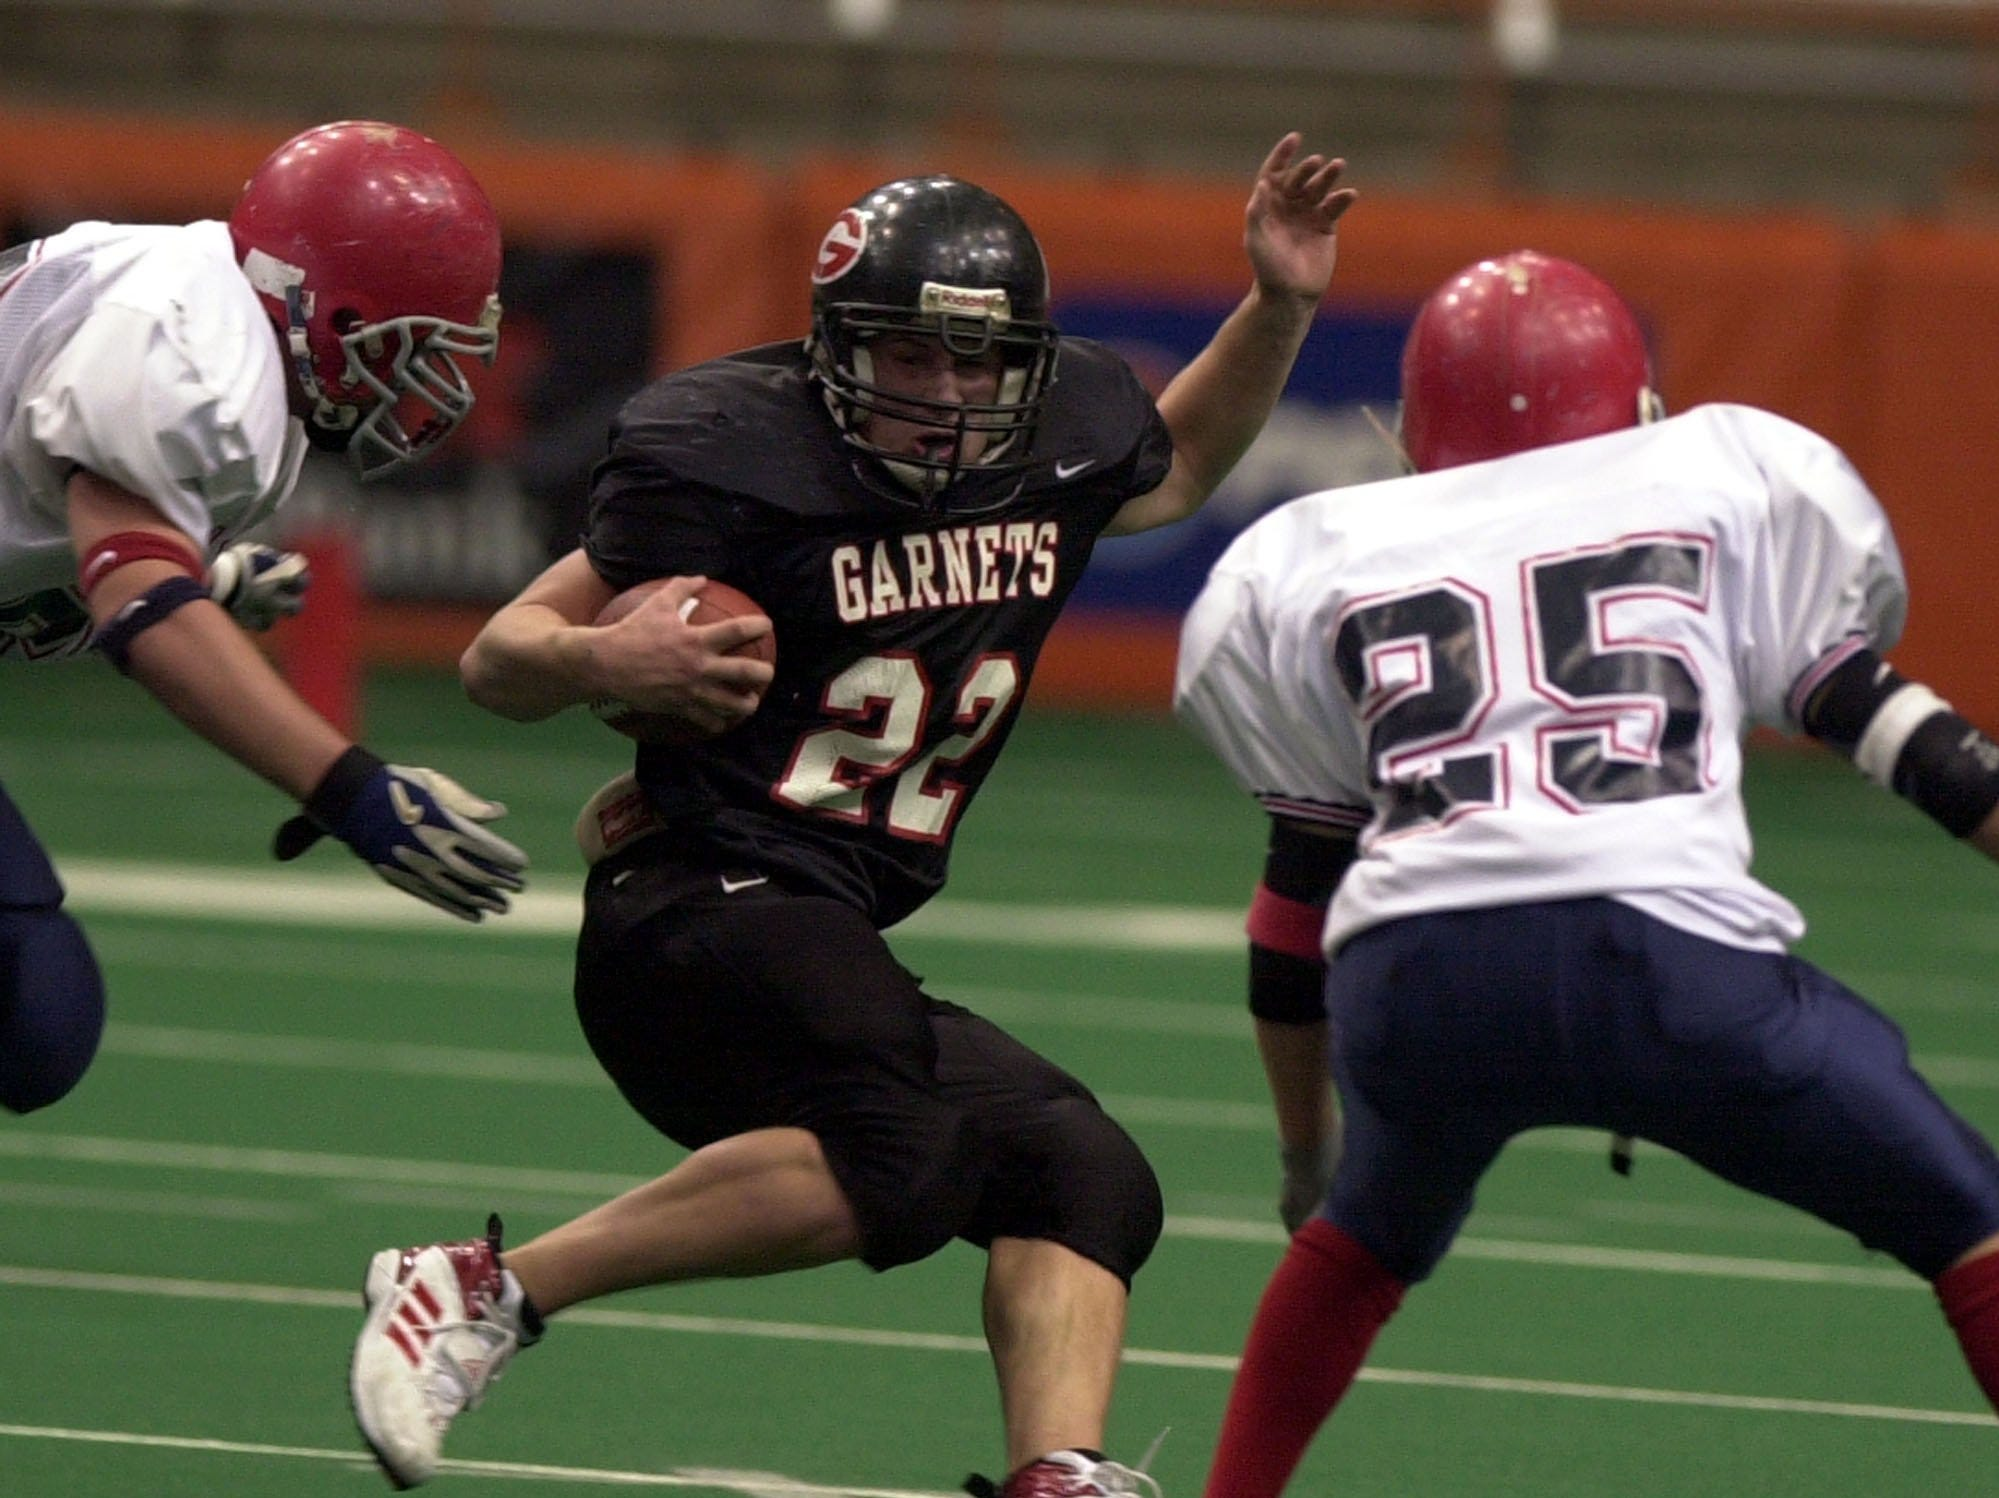 Rye's Eddie Urso maneuvers around Chenango Forks defenders including Jason Chier, right, during the Class B state championship game between Rye High School and Chenango Forks High School, Nov. 29, 2003 at the Carrier Dome in Syracuse, N.Y.